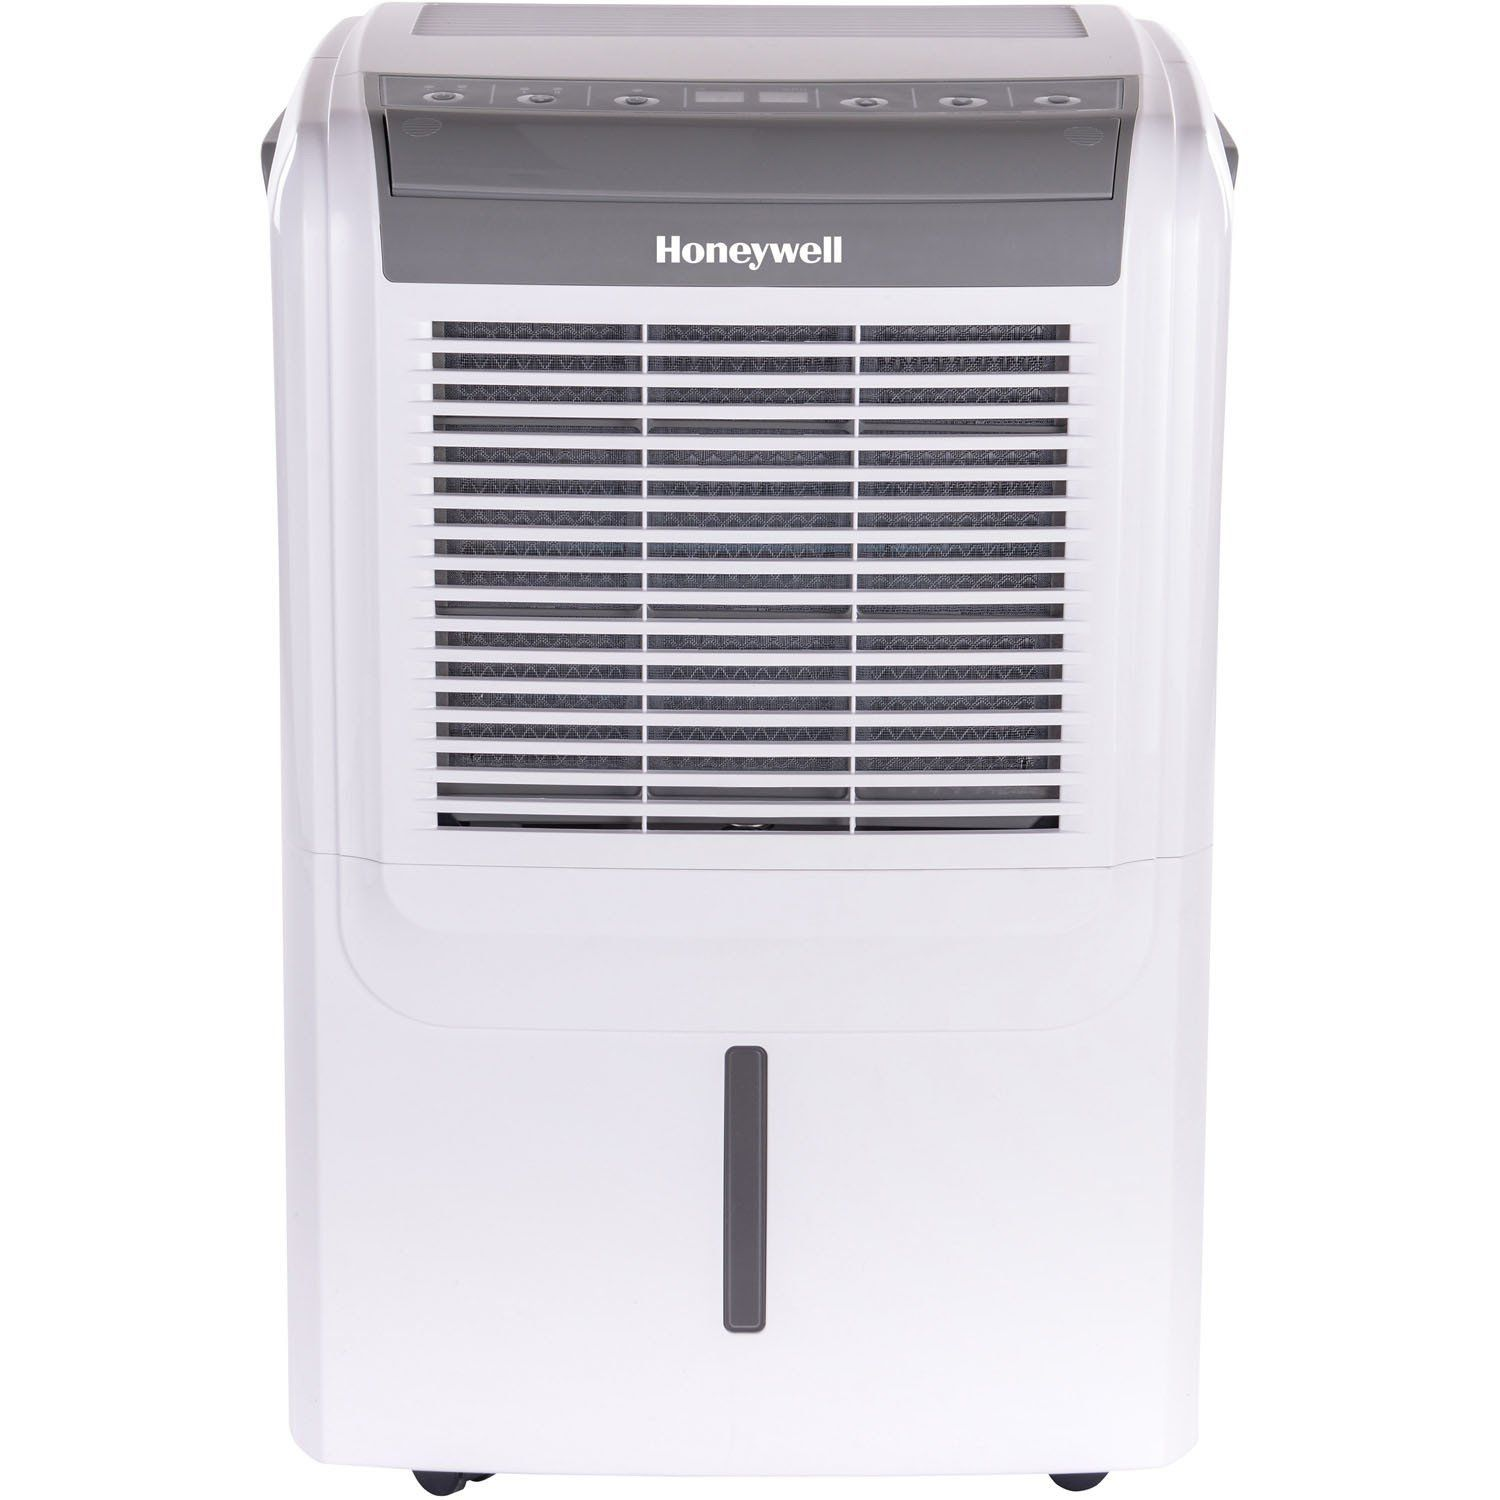 Honeywell 70 Pint Dehumidifier Dehumidifiers, Heating